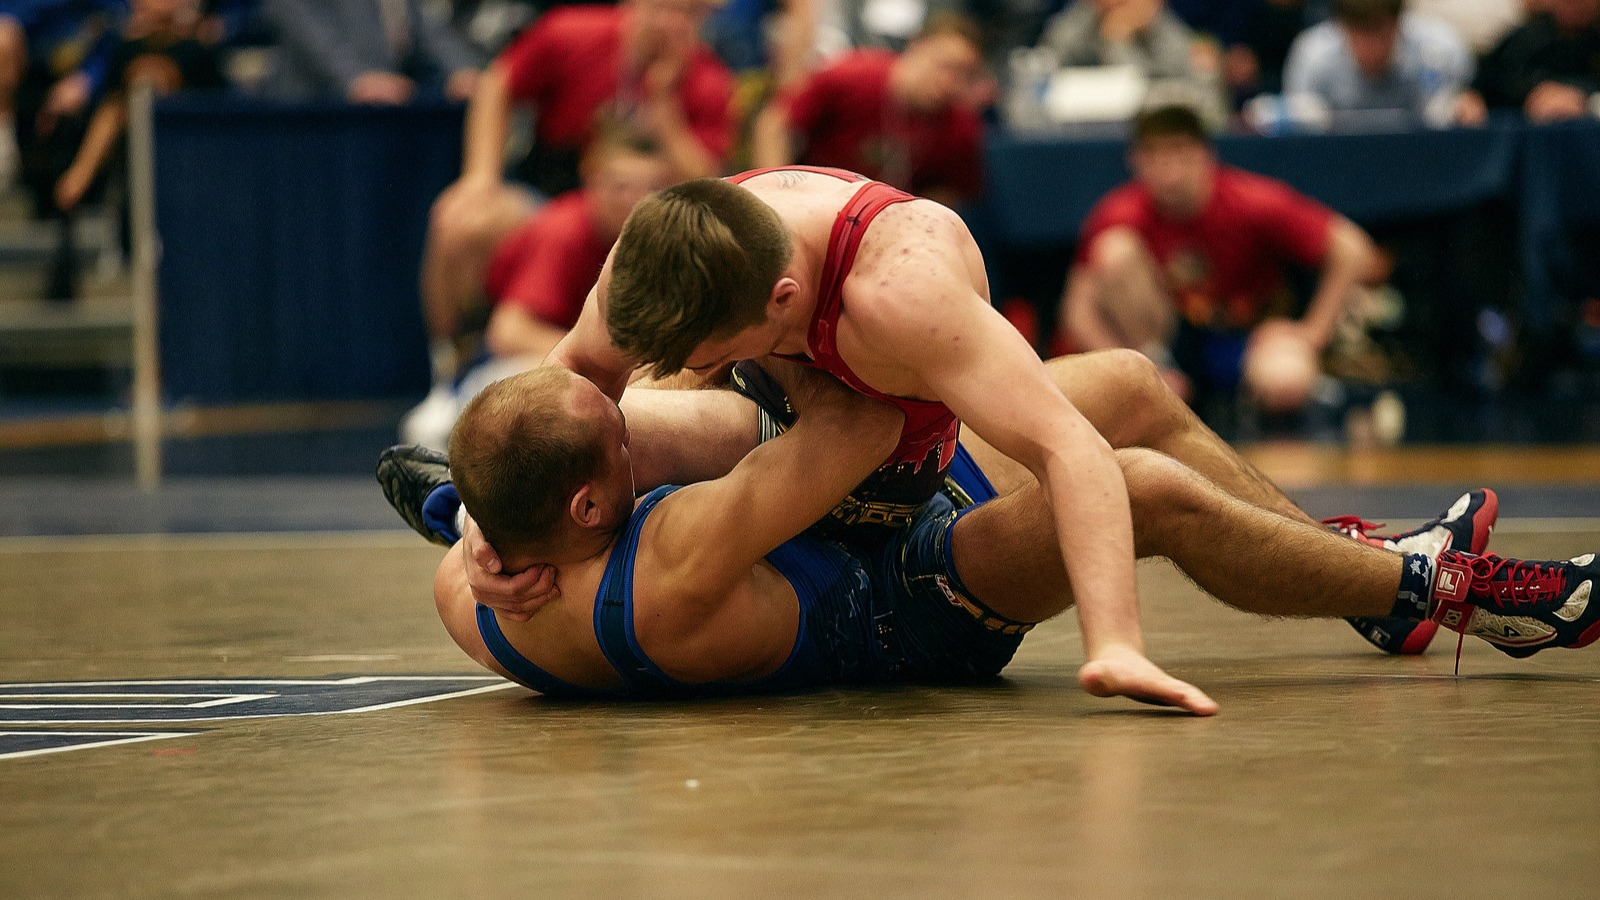 Top 5 Moments From Pittsburgh Wrestling Classic | FloWrestling